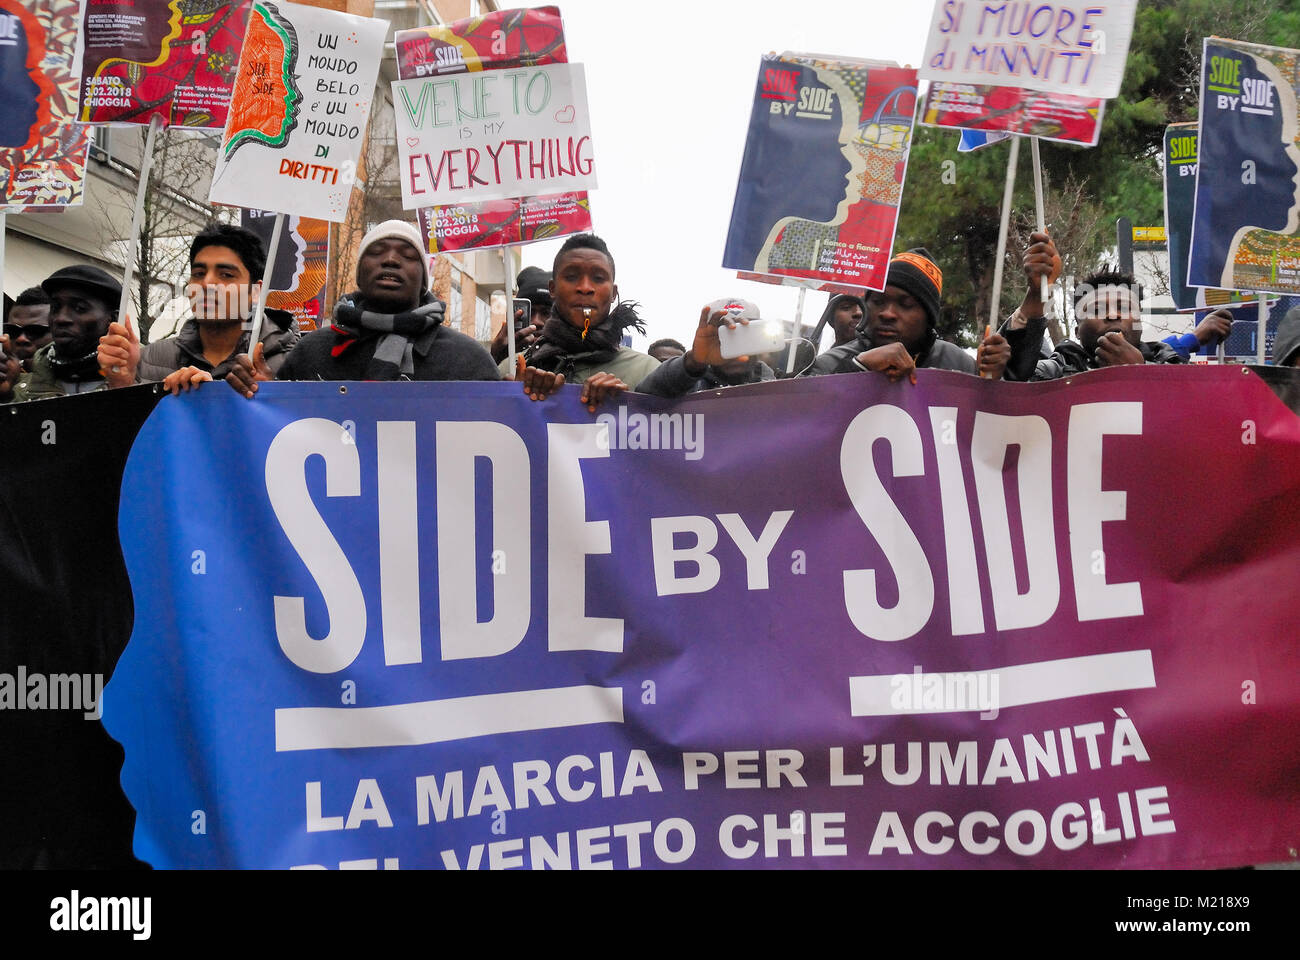 Chioggia, Venice, Italy, February 3rd, 2018. March 'Side by Side', Some hundreds people, Italians aln immigrants, - Stock Image